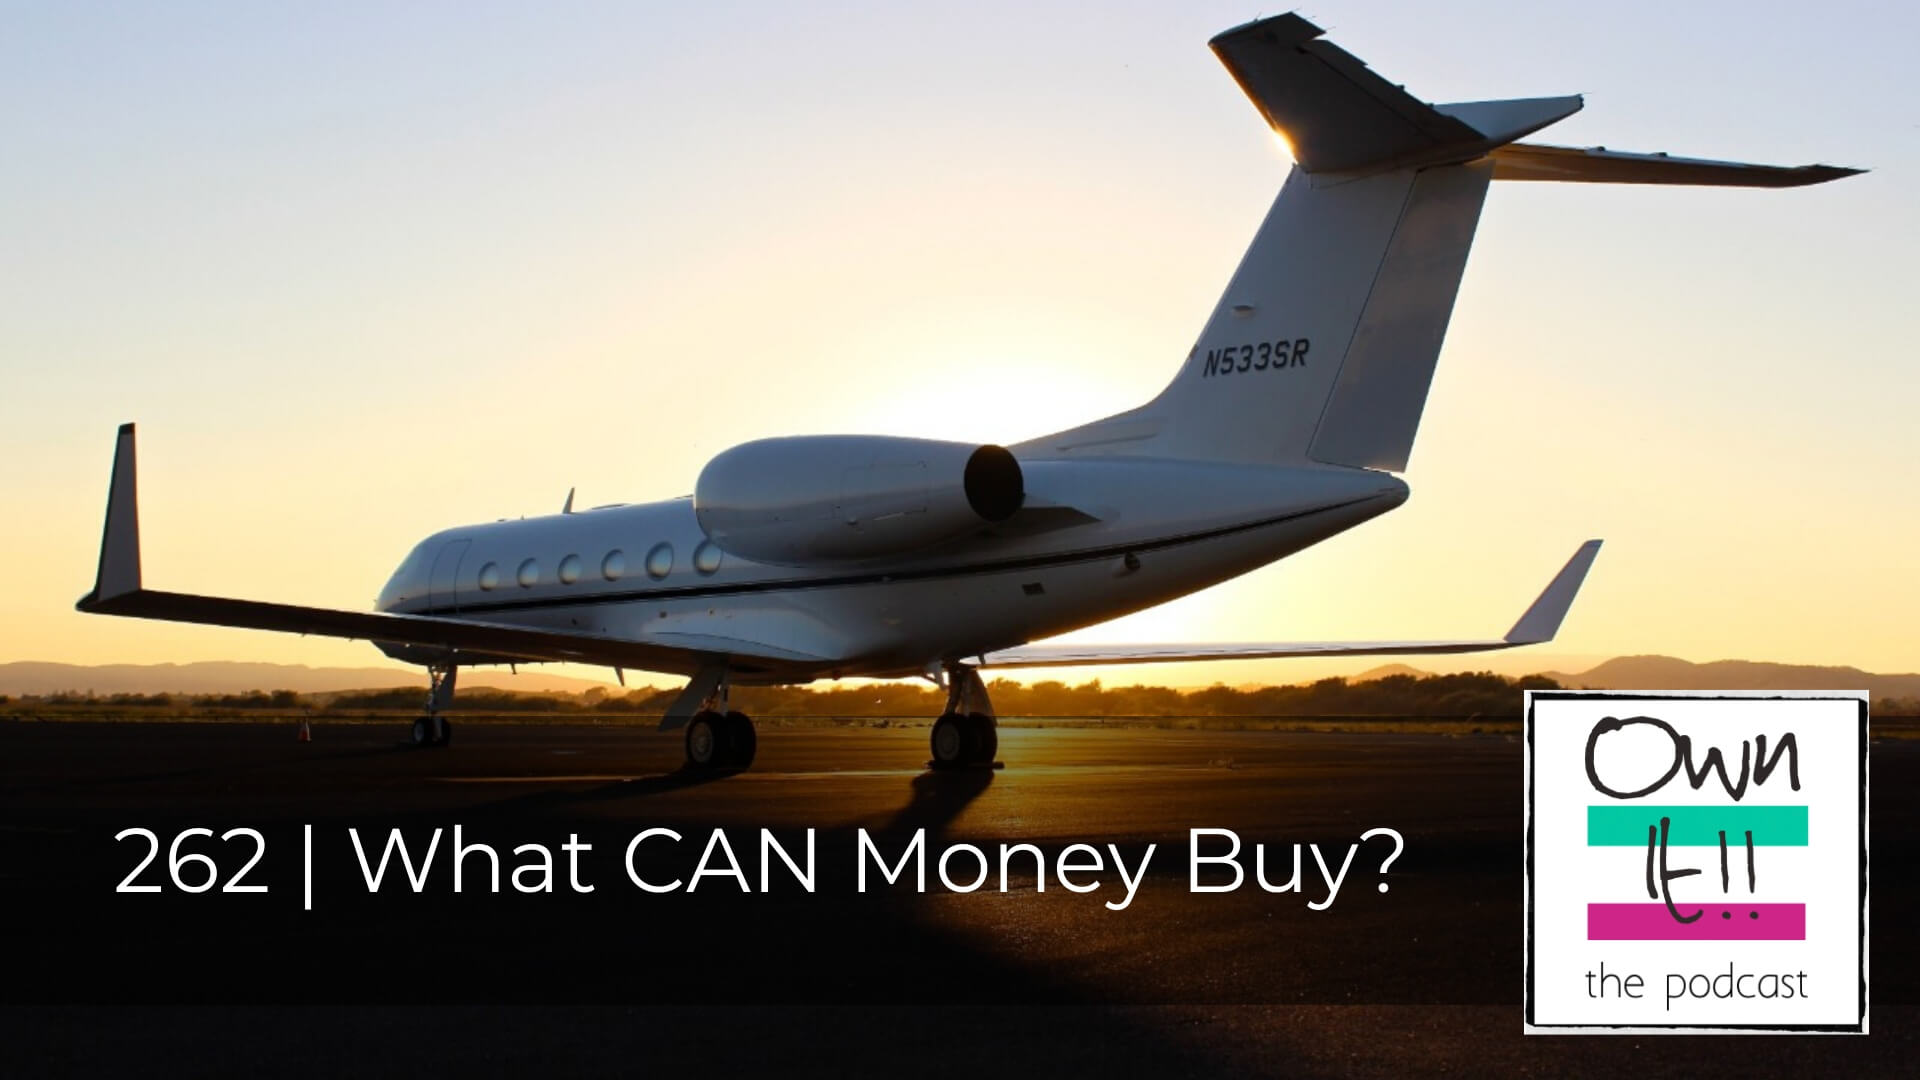 Own It! 262 | What CAN Money Buy?